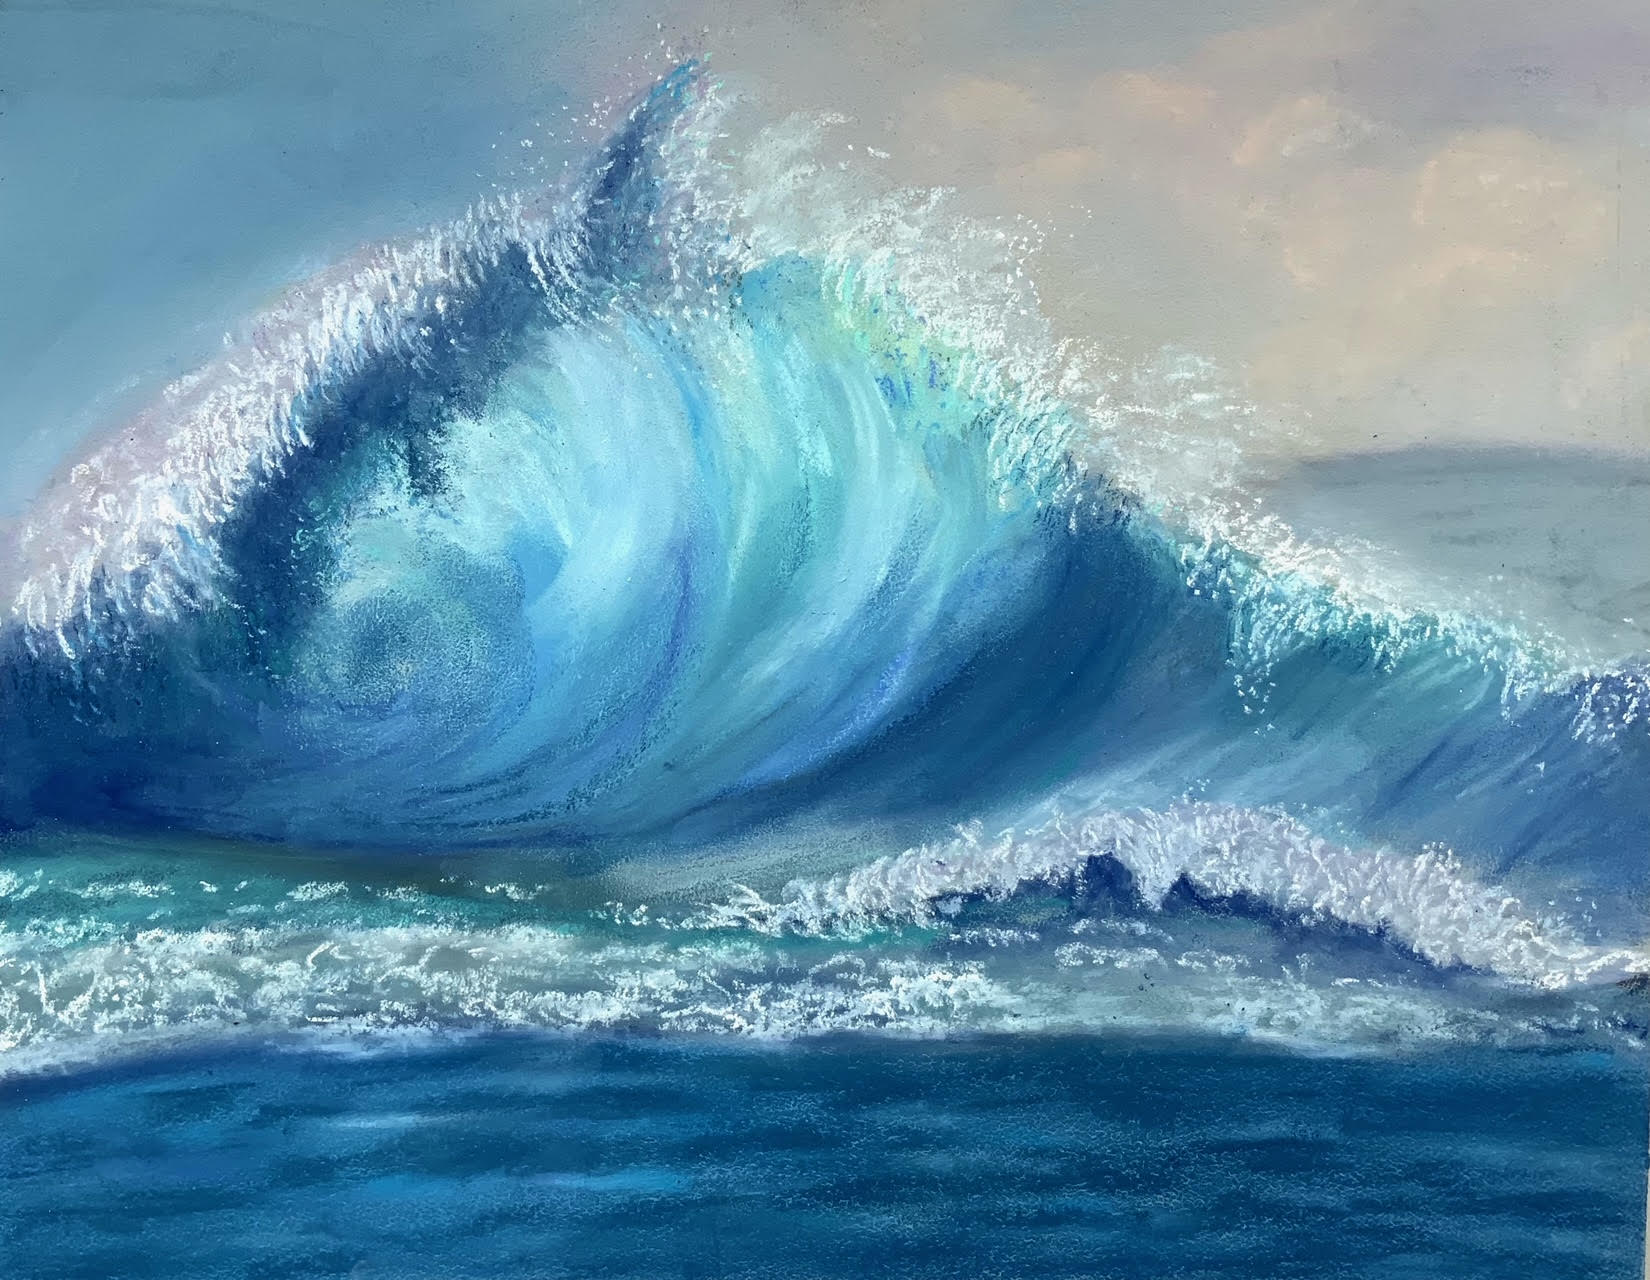 Sea wave pastel work by Hazel created at online Introduction to Soft pastels course